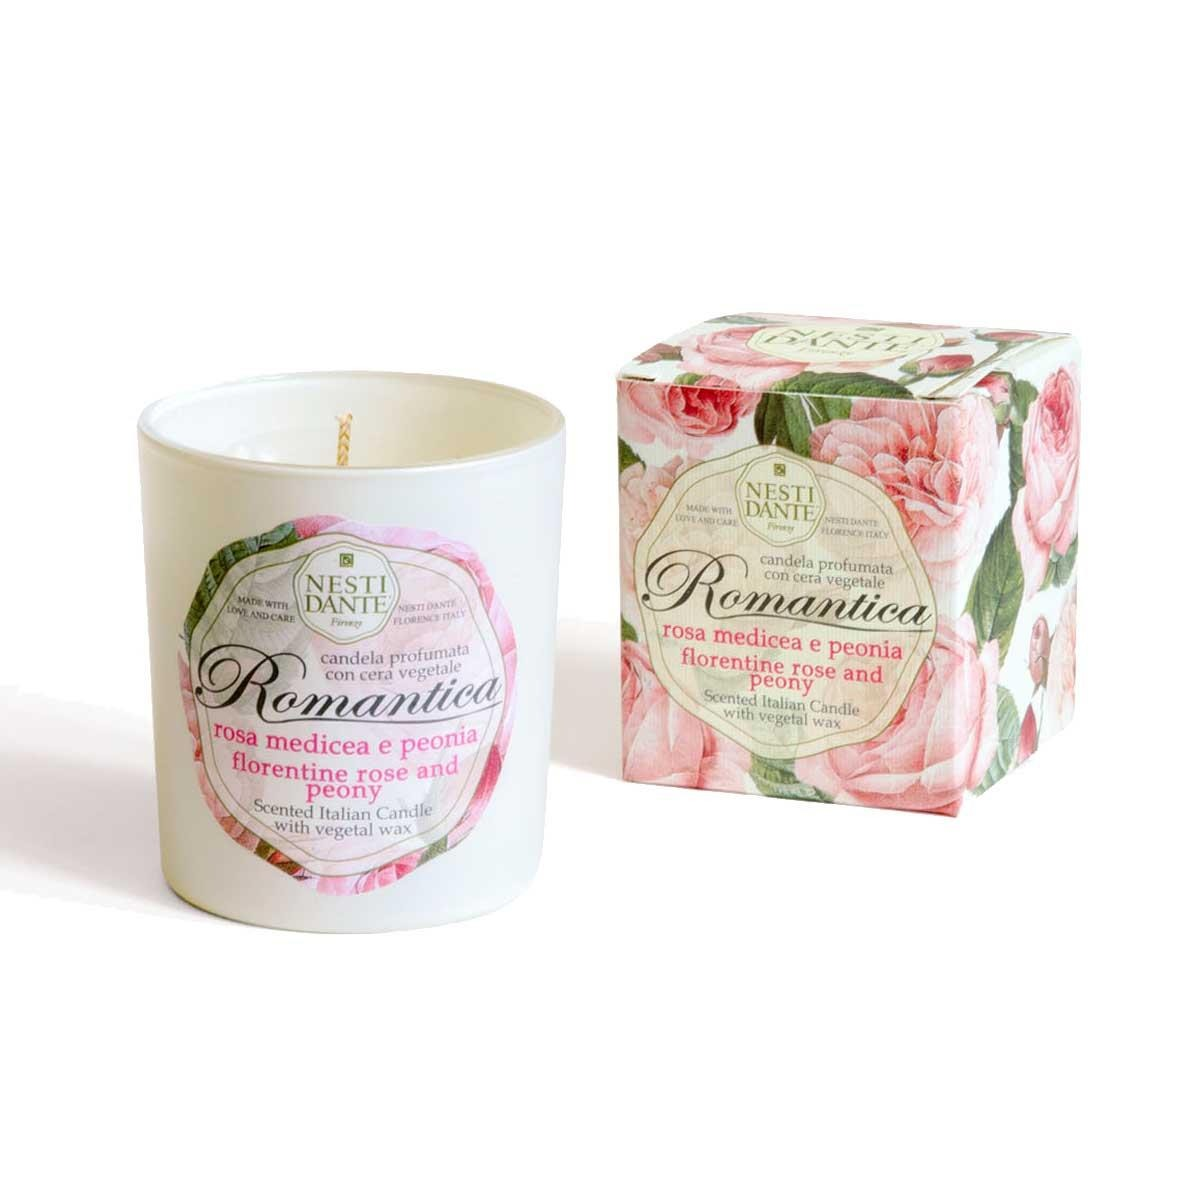 Nestl Dante Candle - Rose and Peony